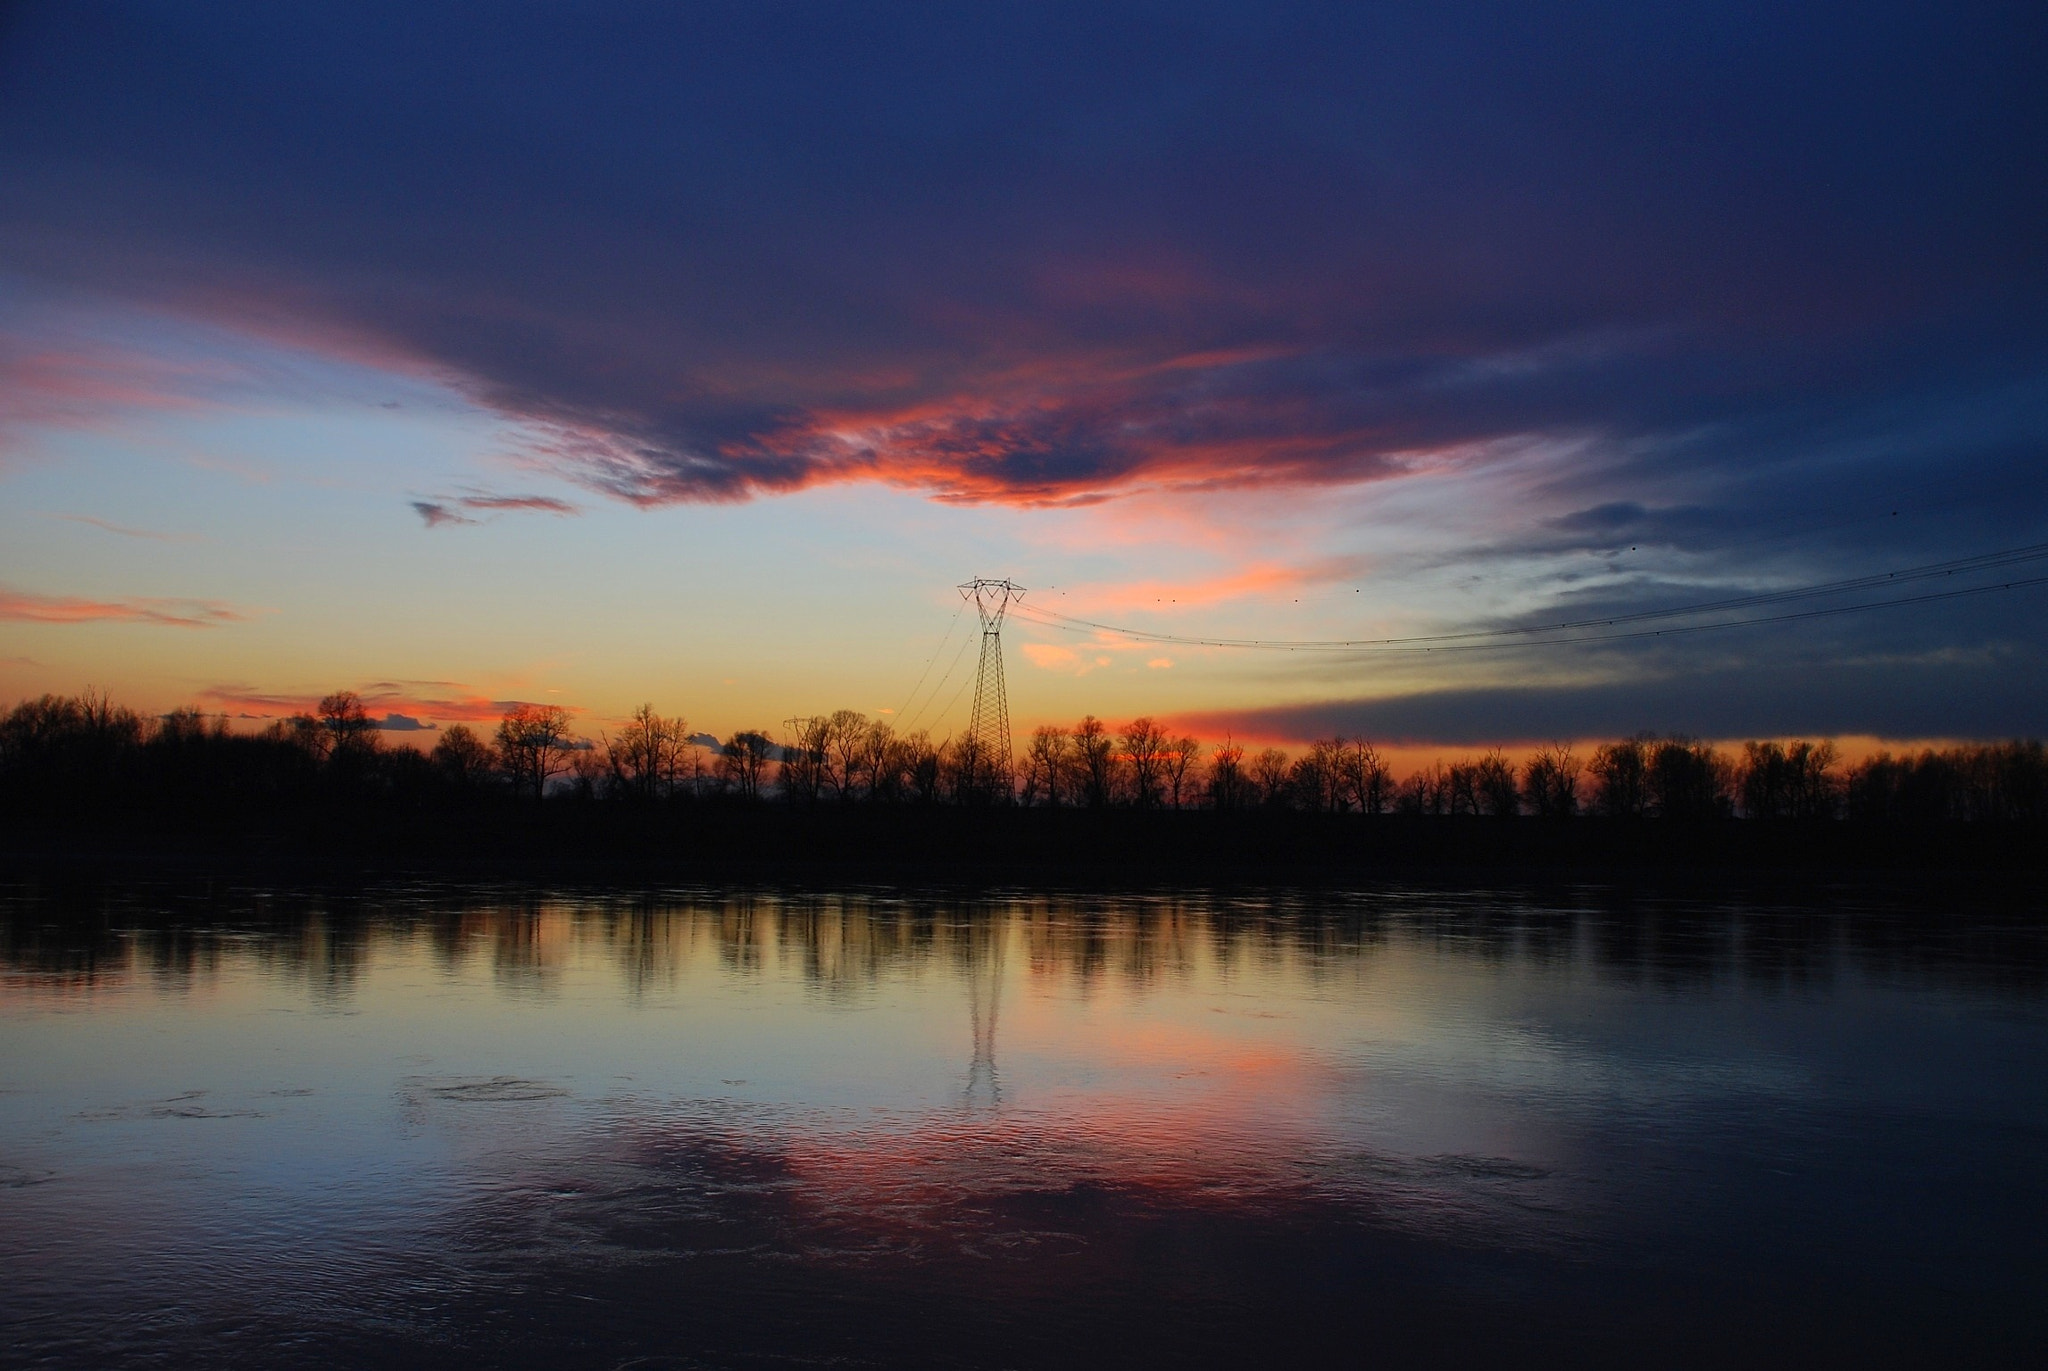 Photograph Sunset on the river Po by luigibertagni on 500px